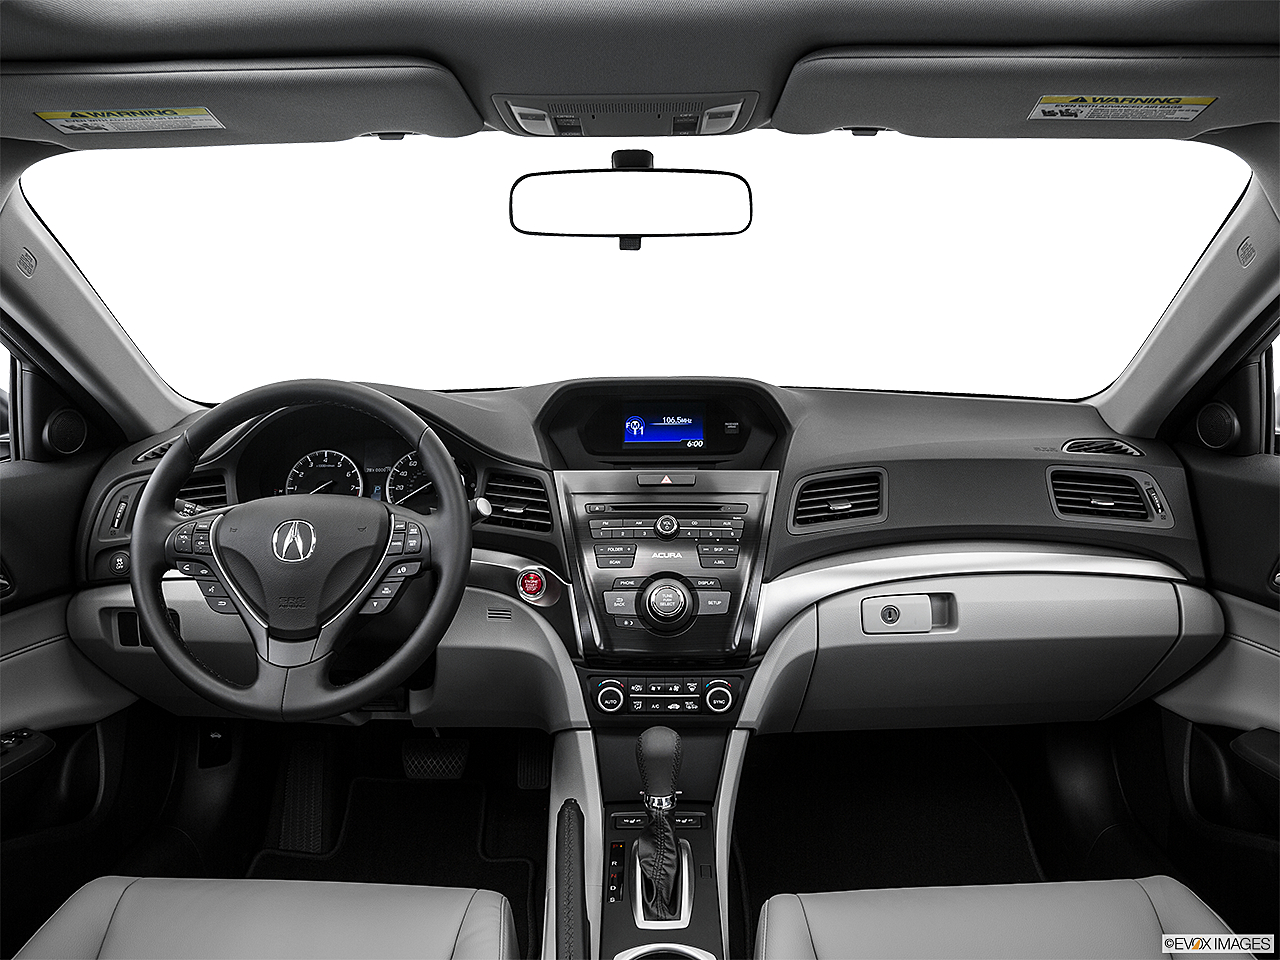 2016 Acura ILX, centered wide dash shot